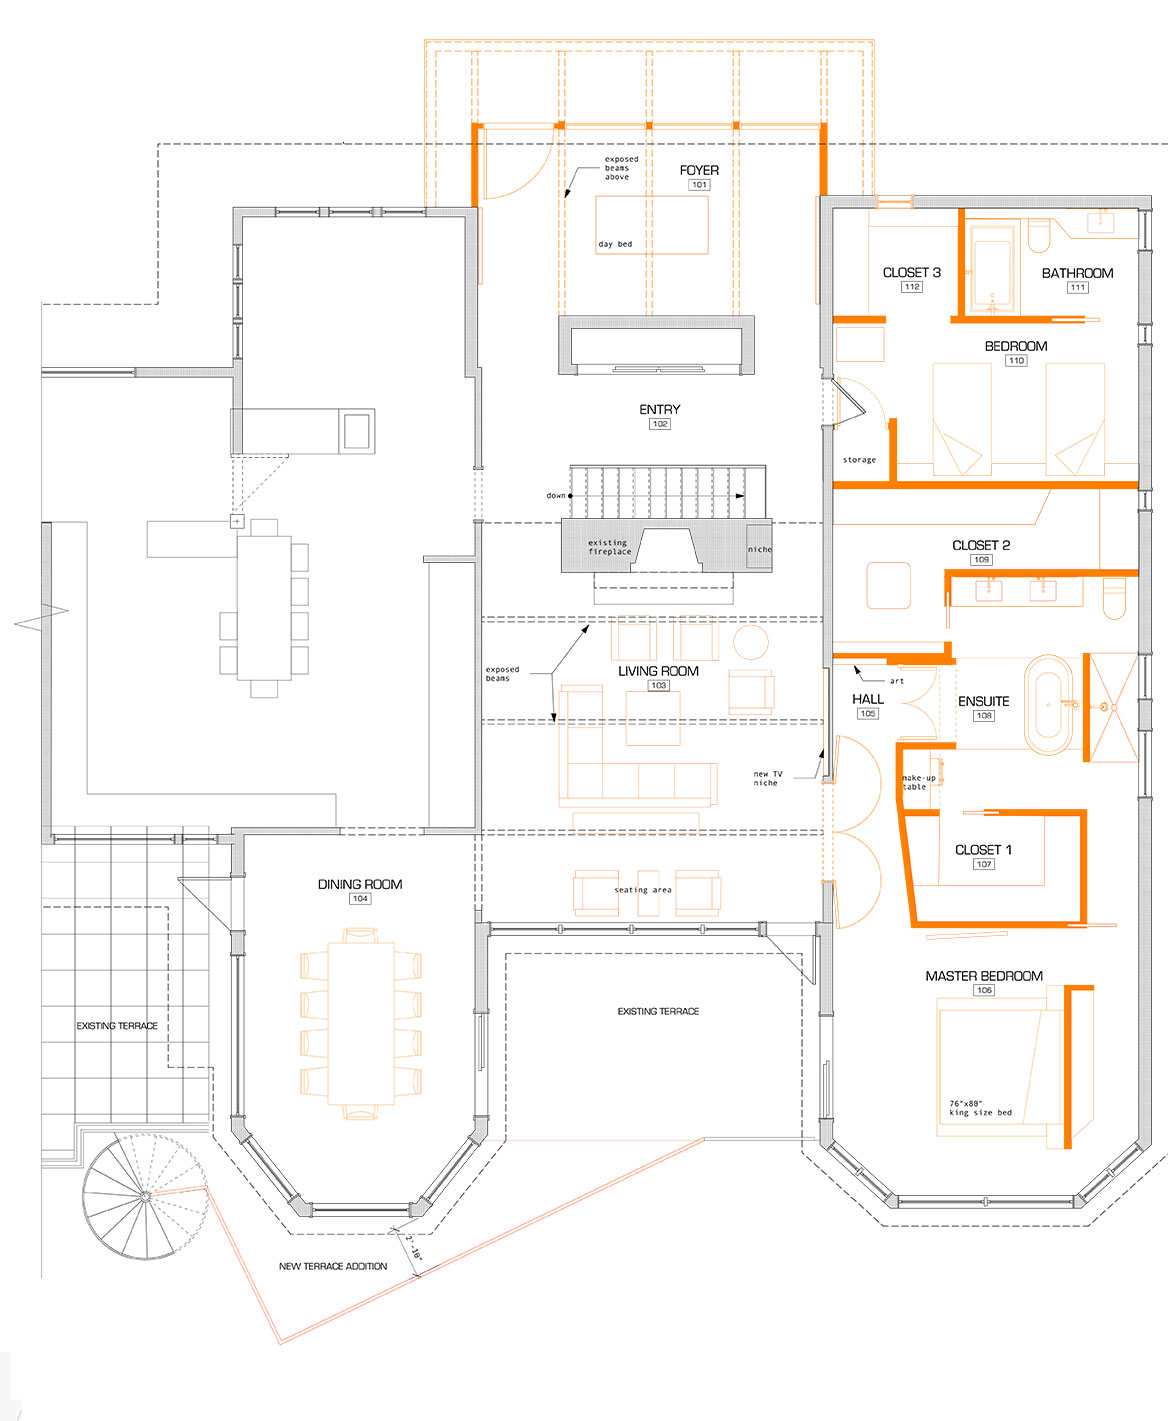 Unit 7 Architecture | Projects - South Drive Residence M - CONCEPT FLOOR PLAN